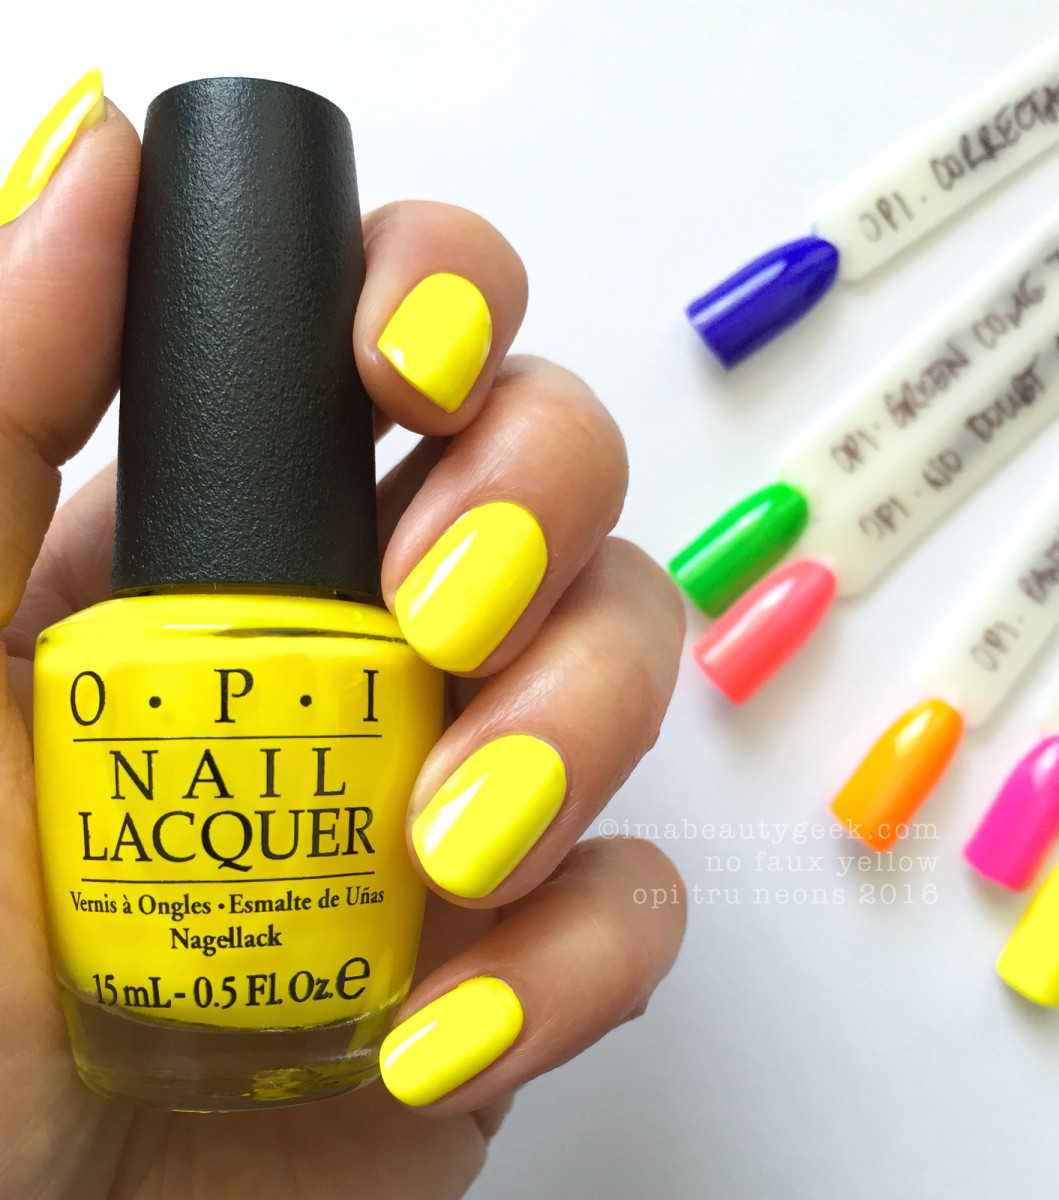 OPI Tru Neons 2016 Summer_OPI No Faux Yellow Neon 2016